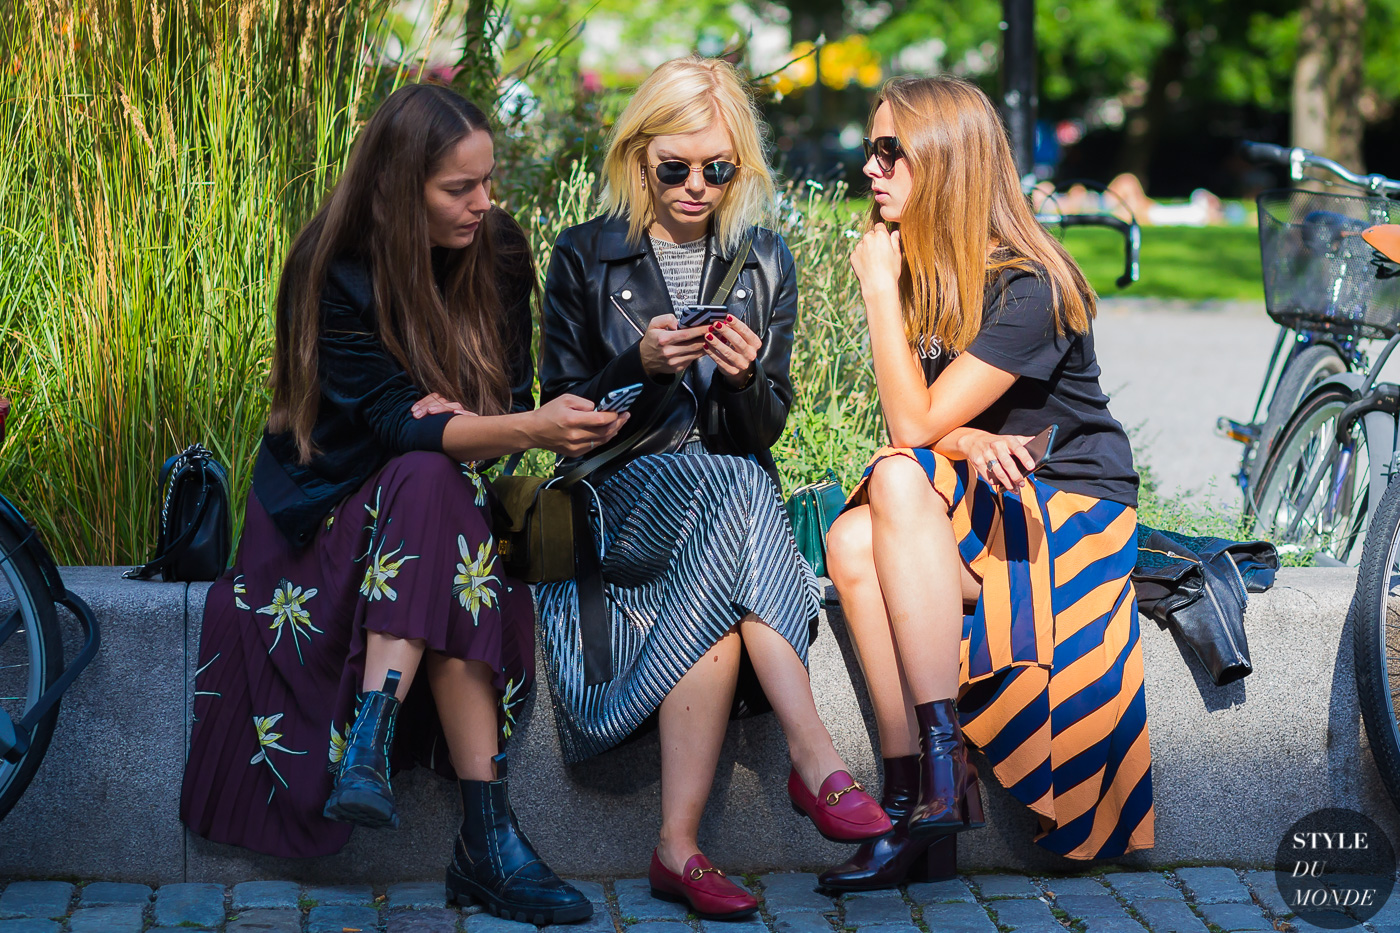 stockholm-streetstyle-by-styledumonde-street-style-fashion-photography